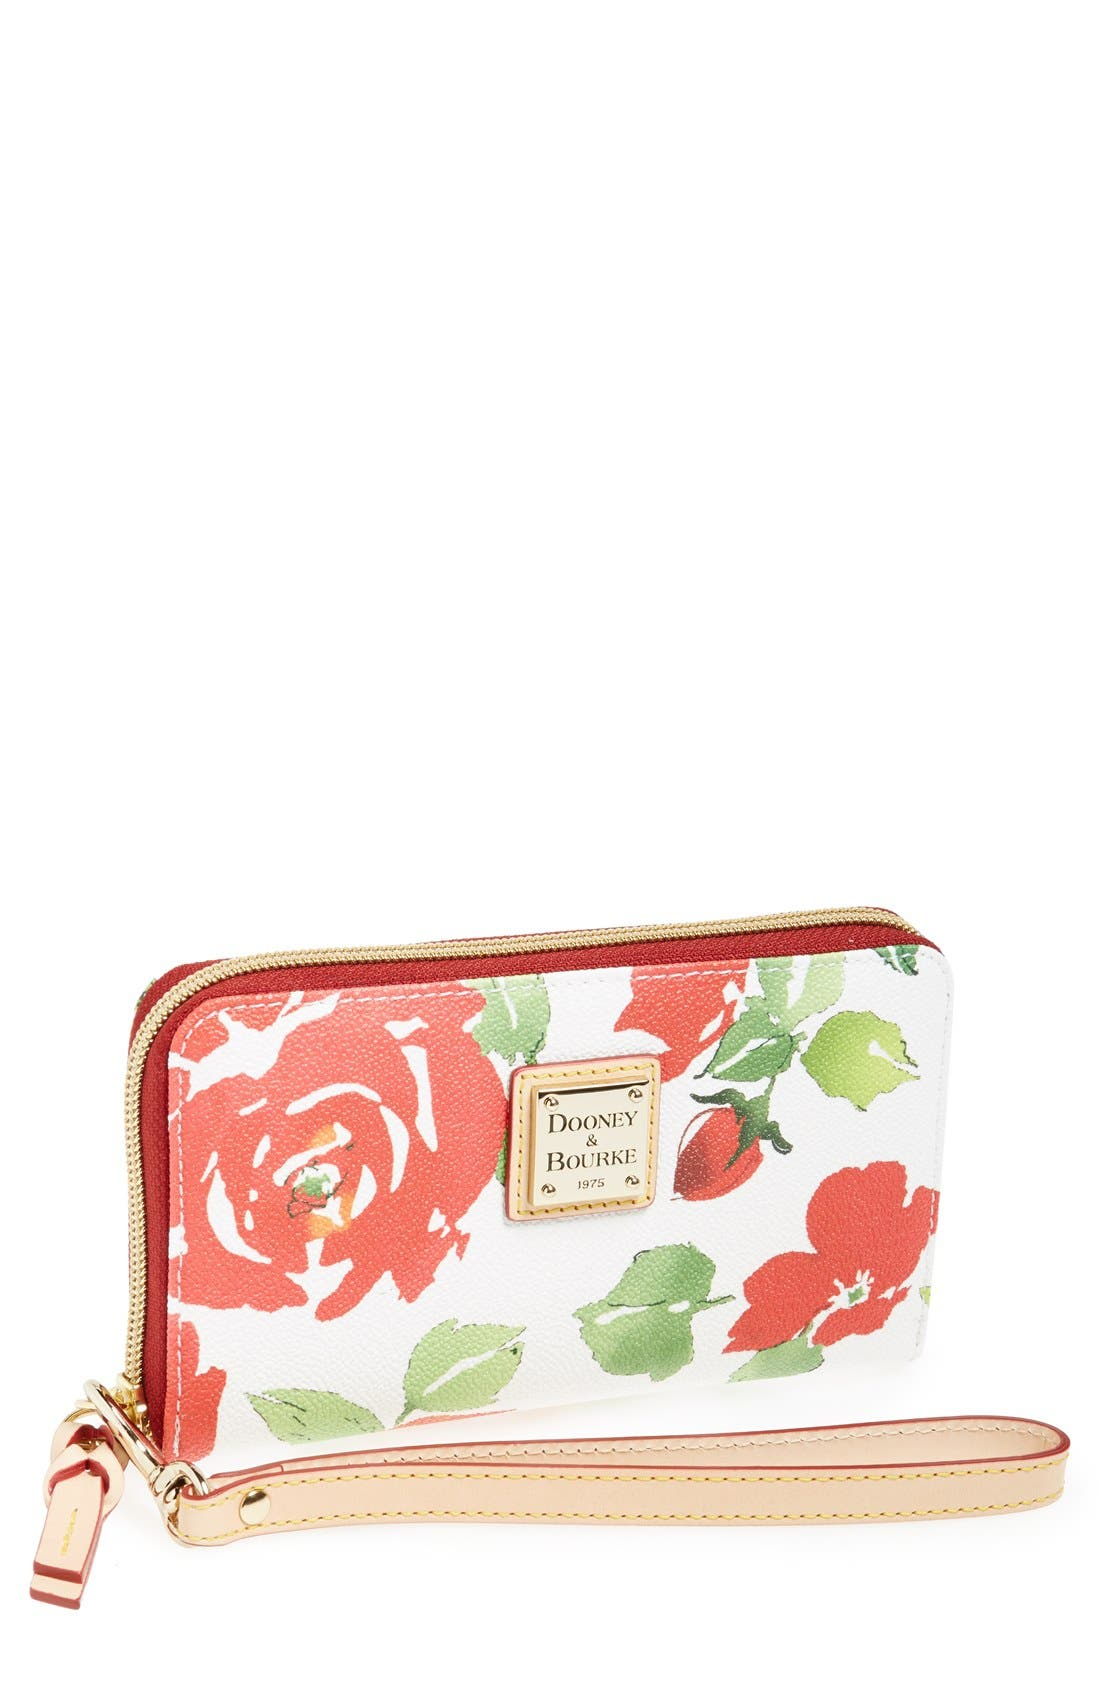 Main Image - Dooney & Bourke 'Rose Garden' Zip Around Wristlet